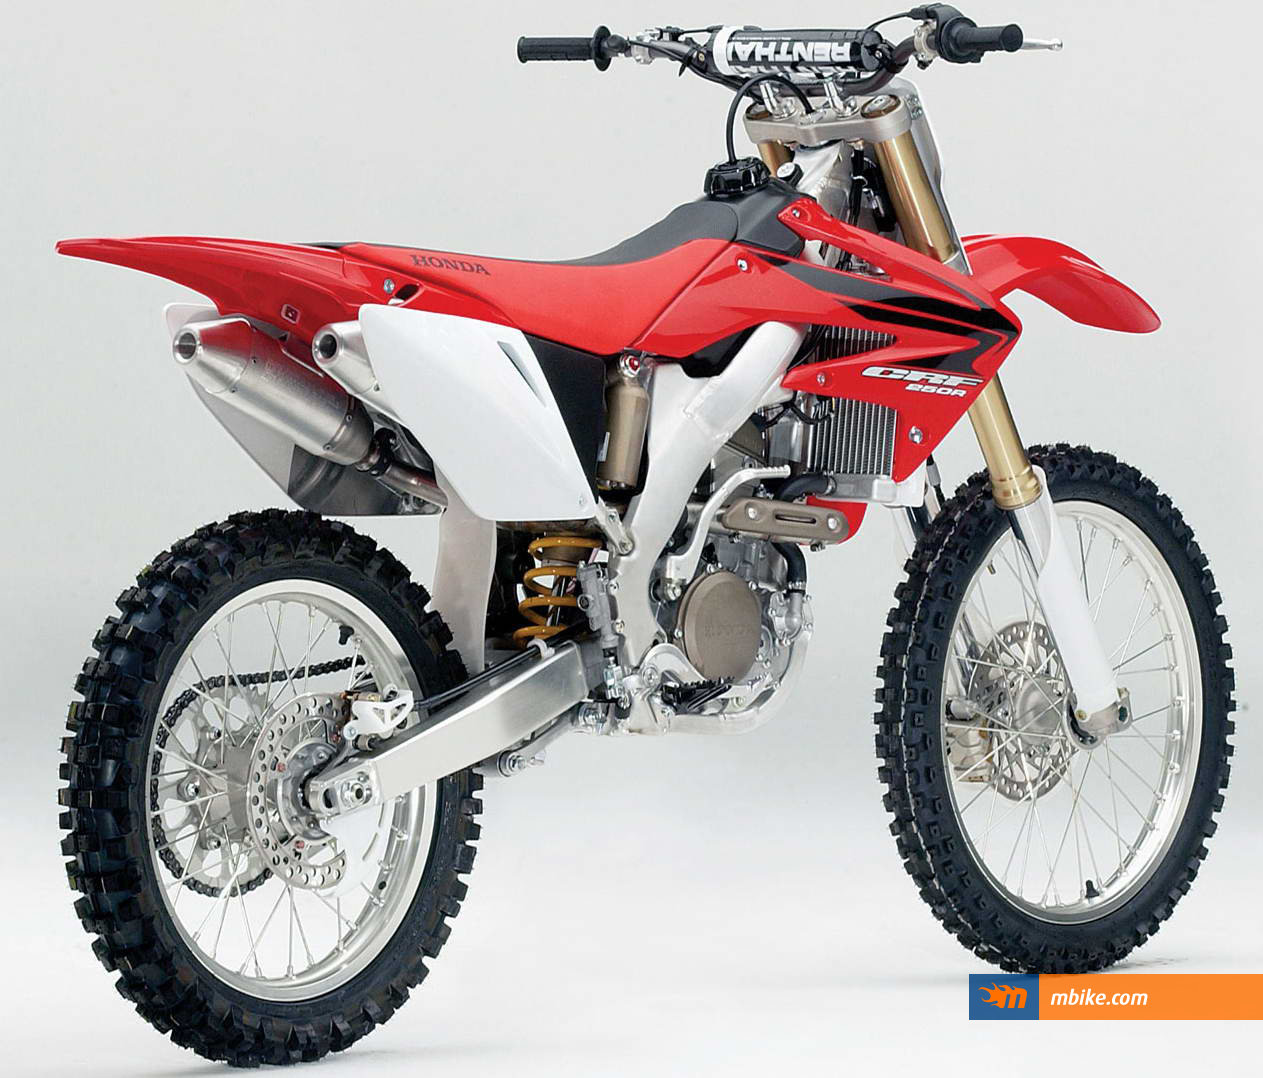 Honda Crf Wallpaper Mbike